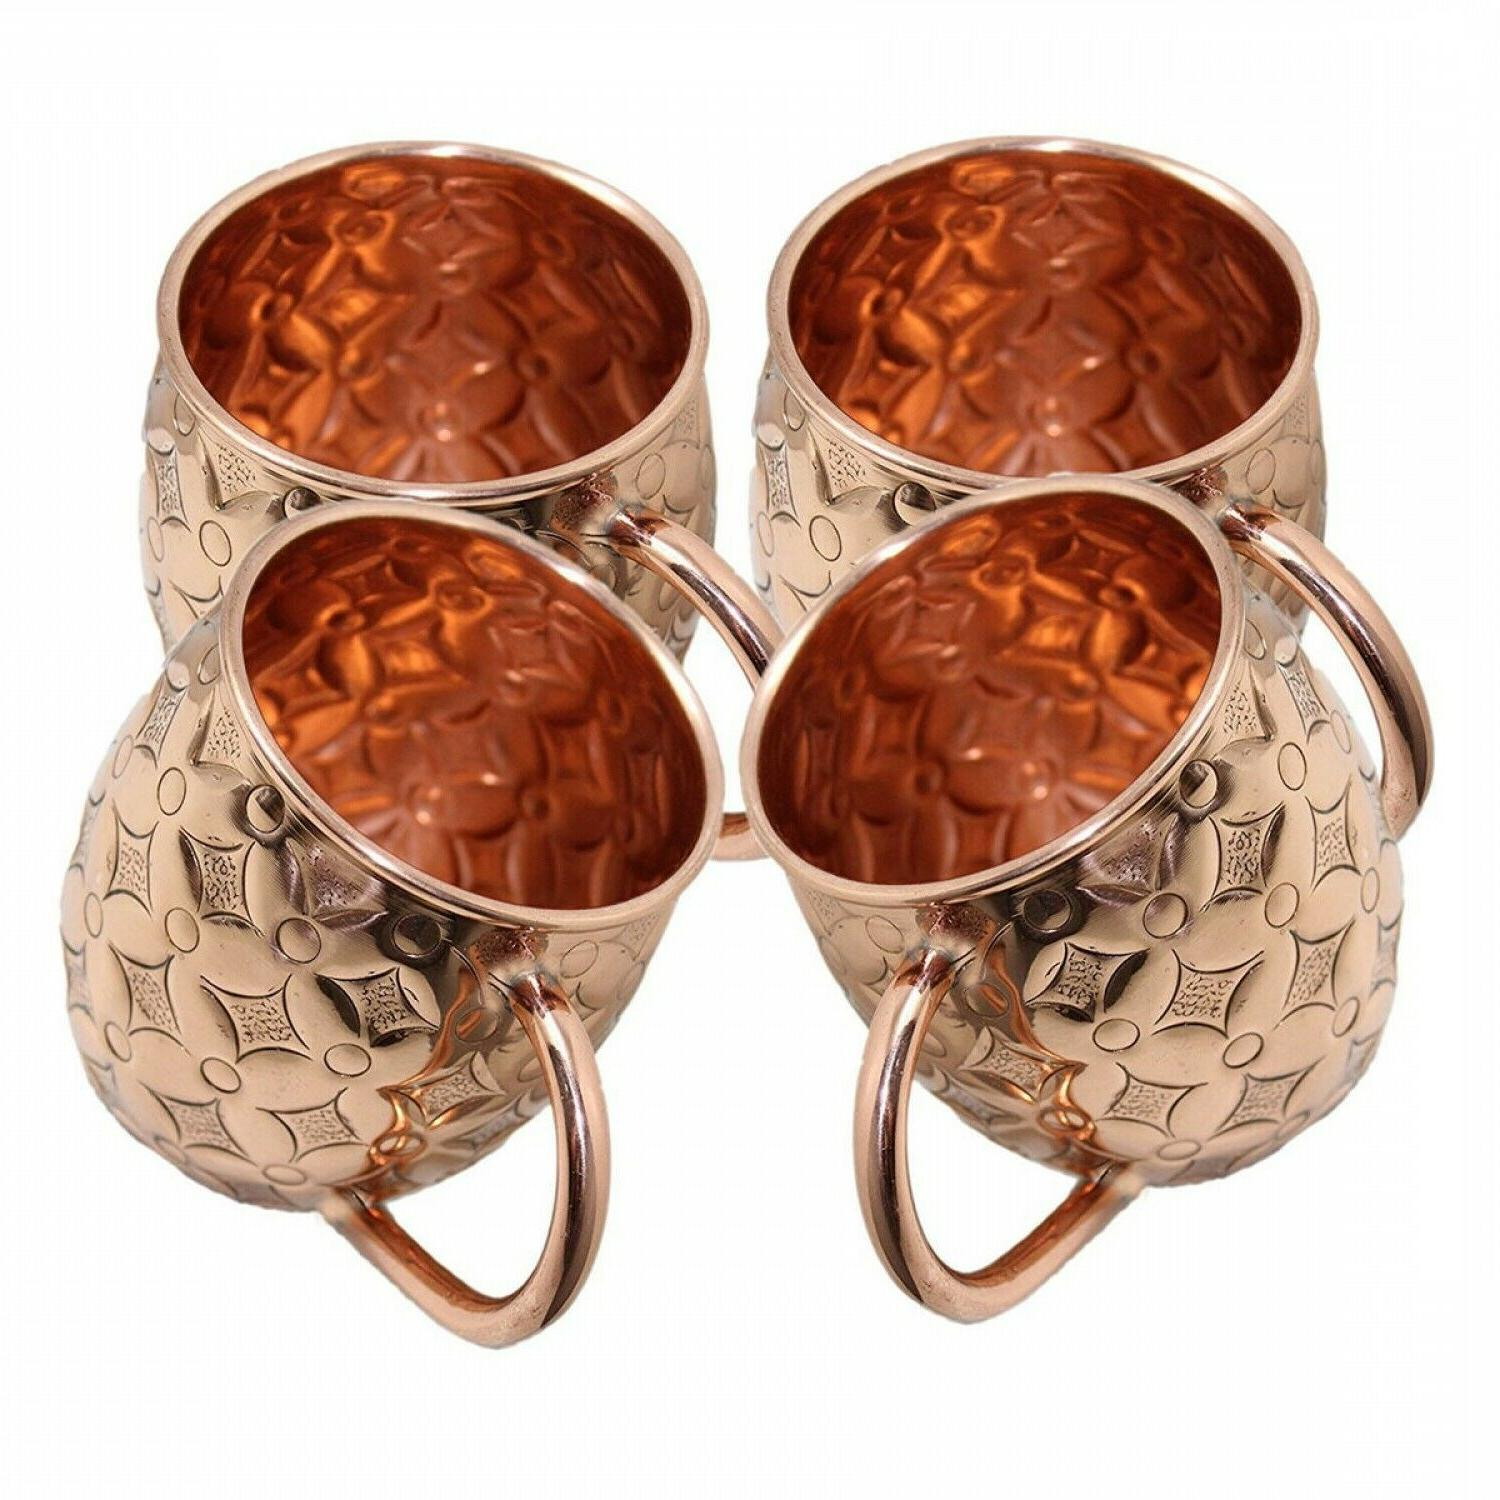 Moscow Mule Copper Mugs Cups Set of 4 16Oz Gift Drinking Bar